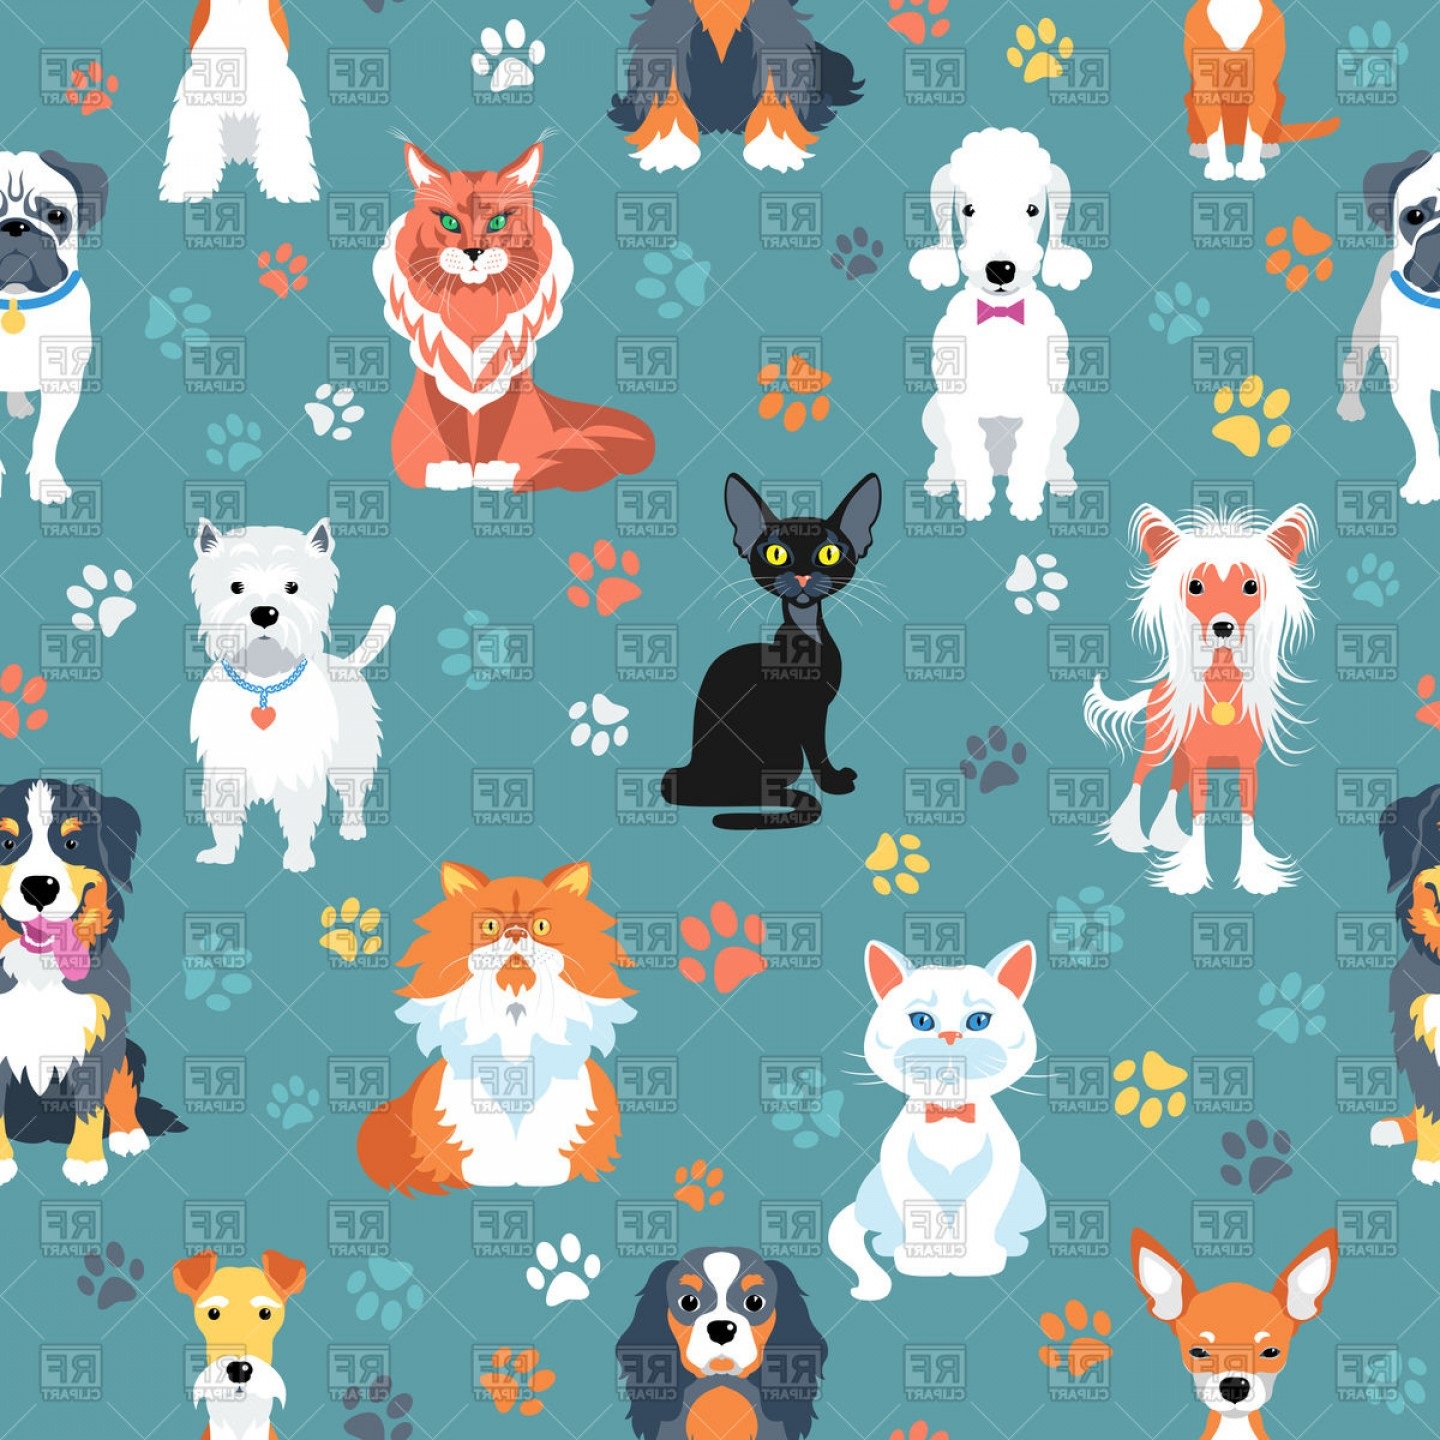 Dog And Cat Vector Illustration: Seamless Background With Cats And Dogs Flat Style Vector Clipart